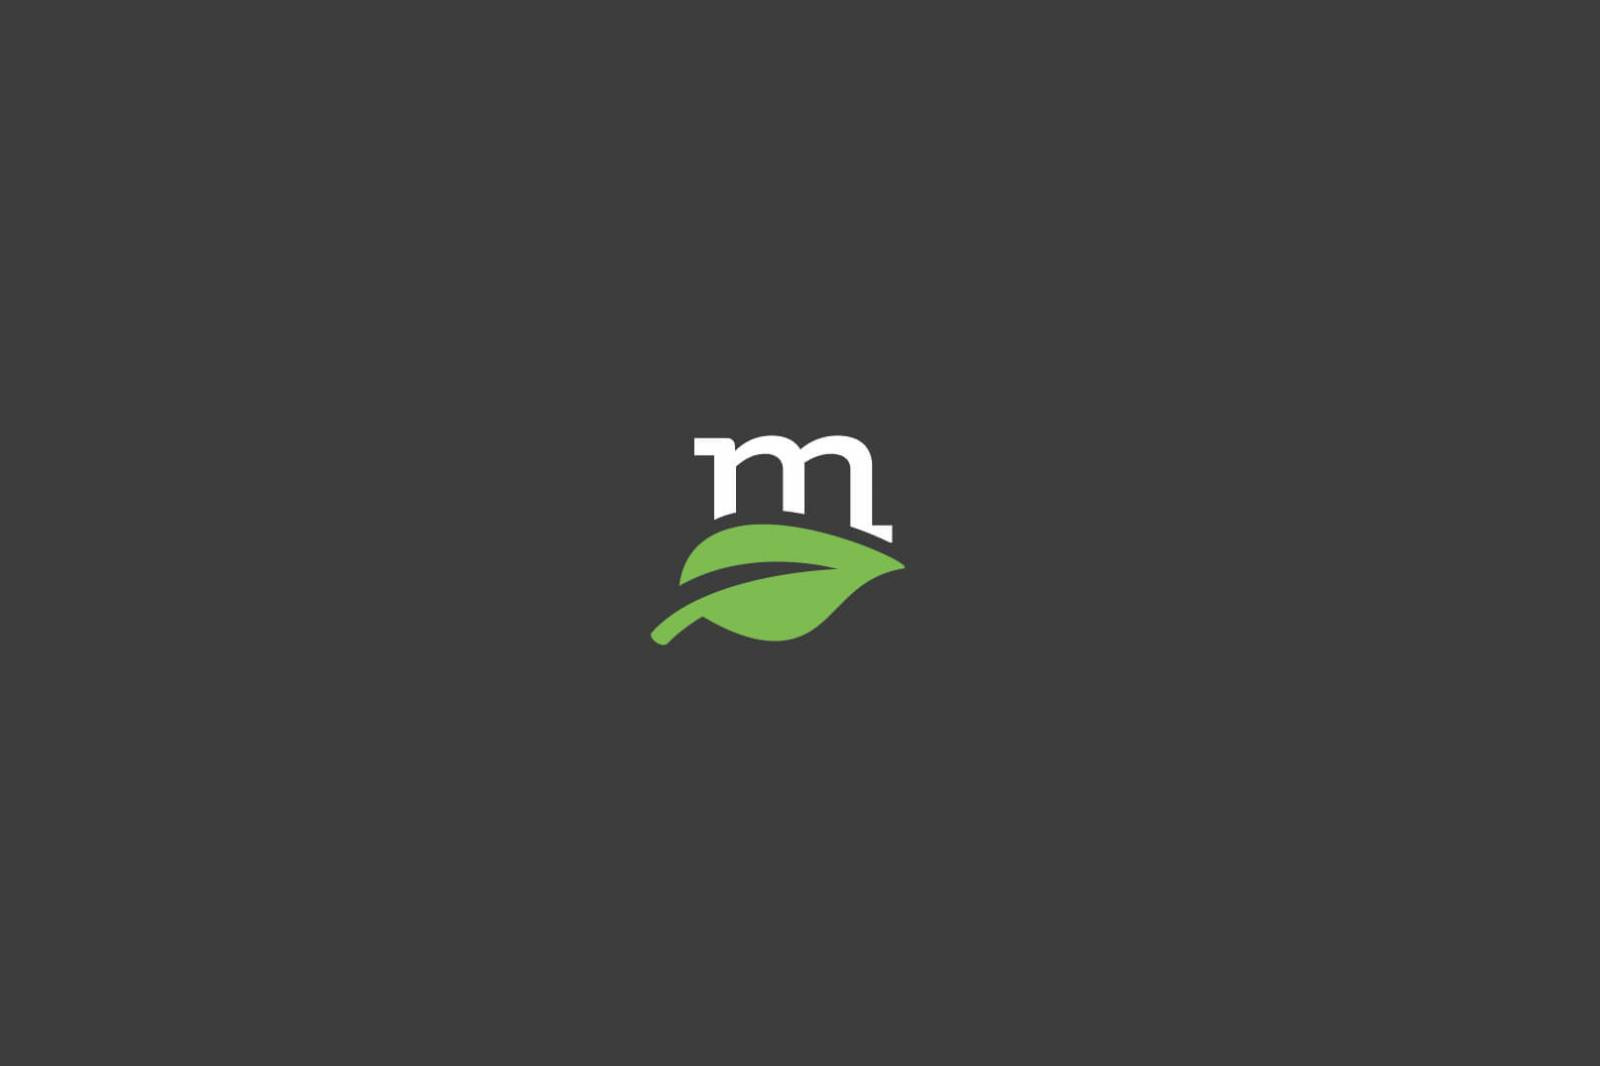 Meadows-logo-3-corporate-identity-agency-graphic-design-canterbury.jpg